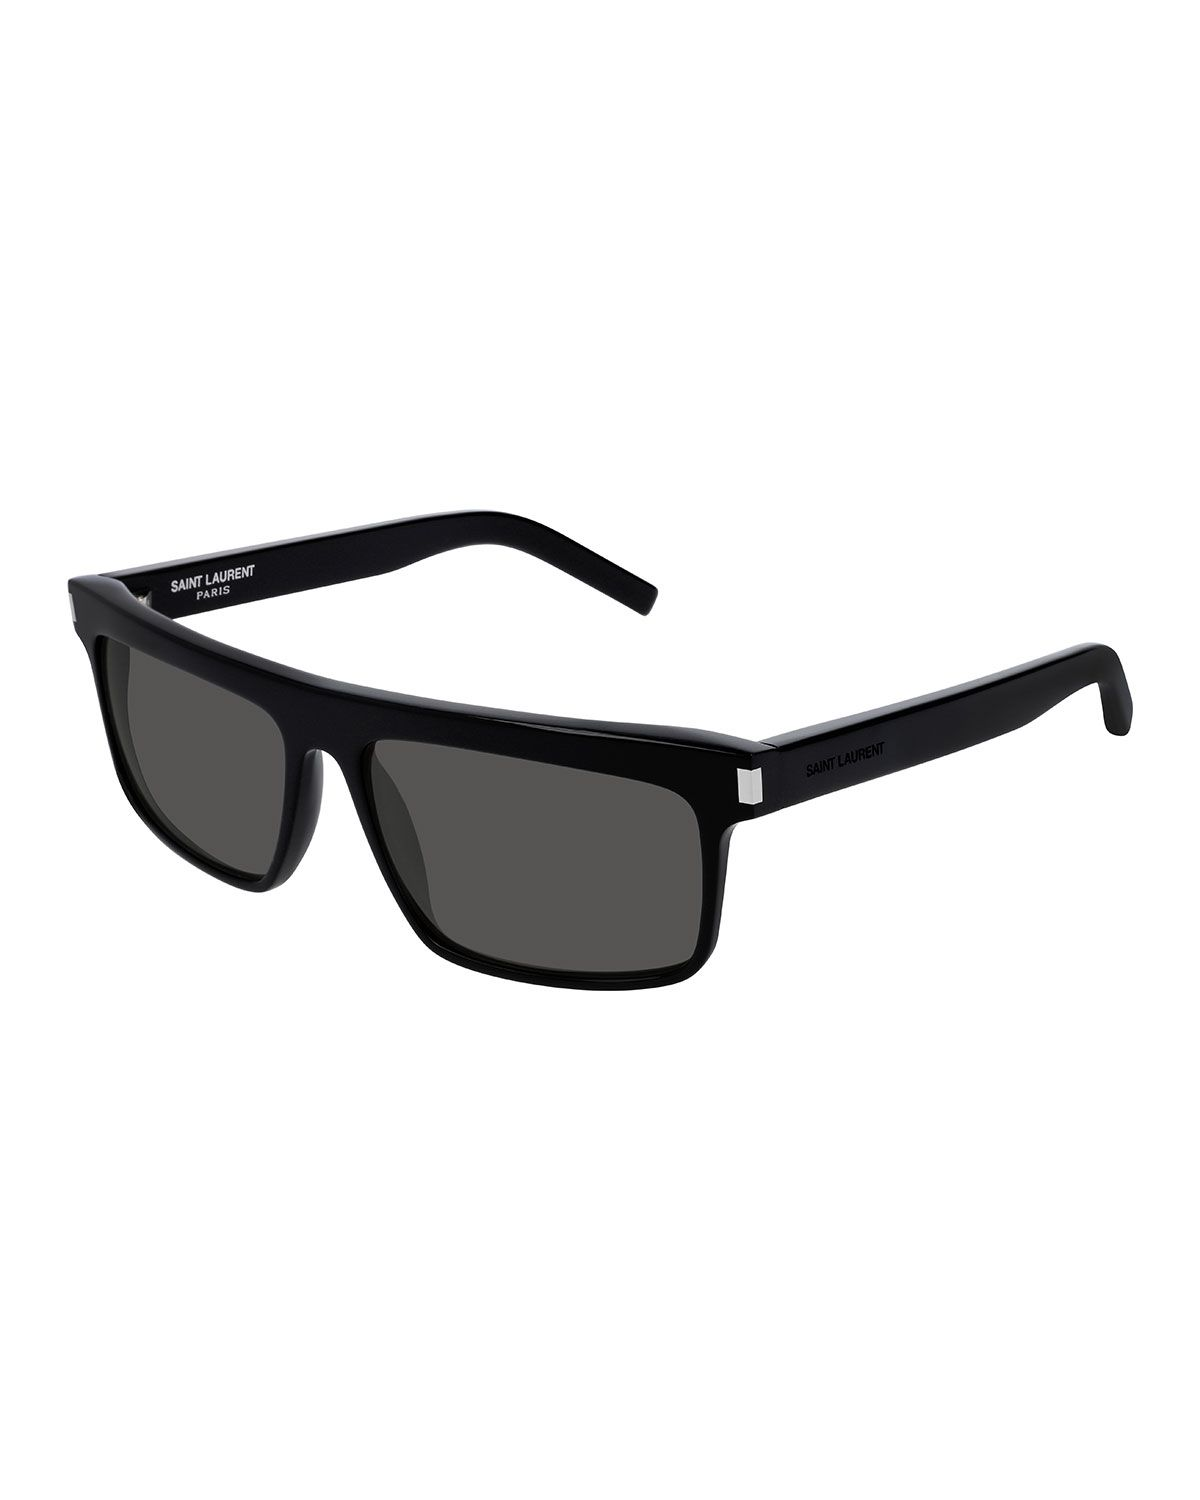 4d637f60fbe90 SAINT LAURENT MEN S FLATTOP RECTANGLE SUNGLASSES WITH MINERAL GLASS LENSES.   saintlaurent